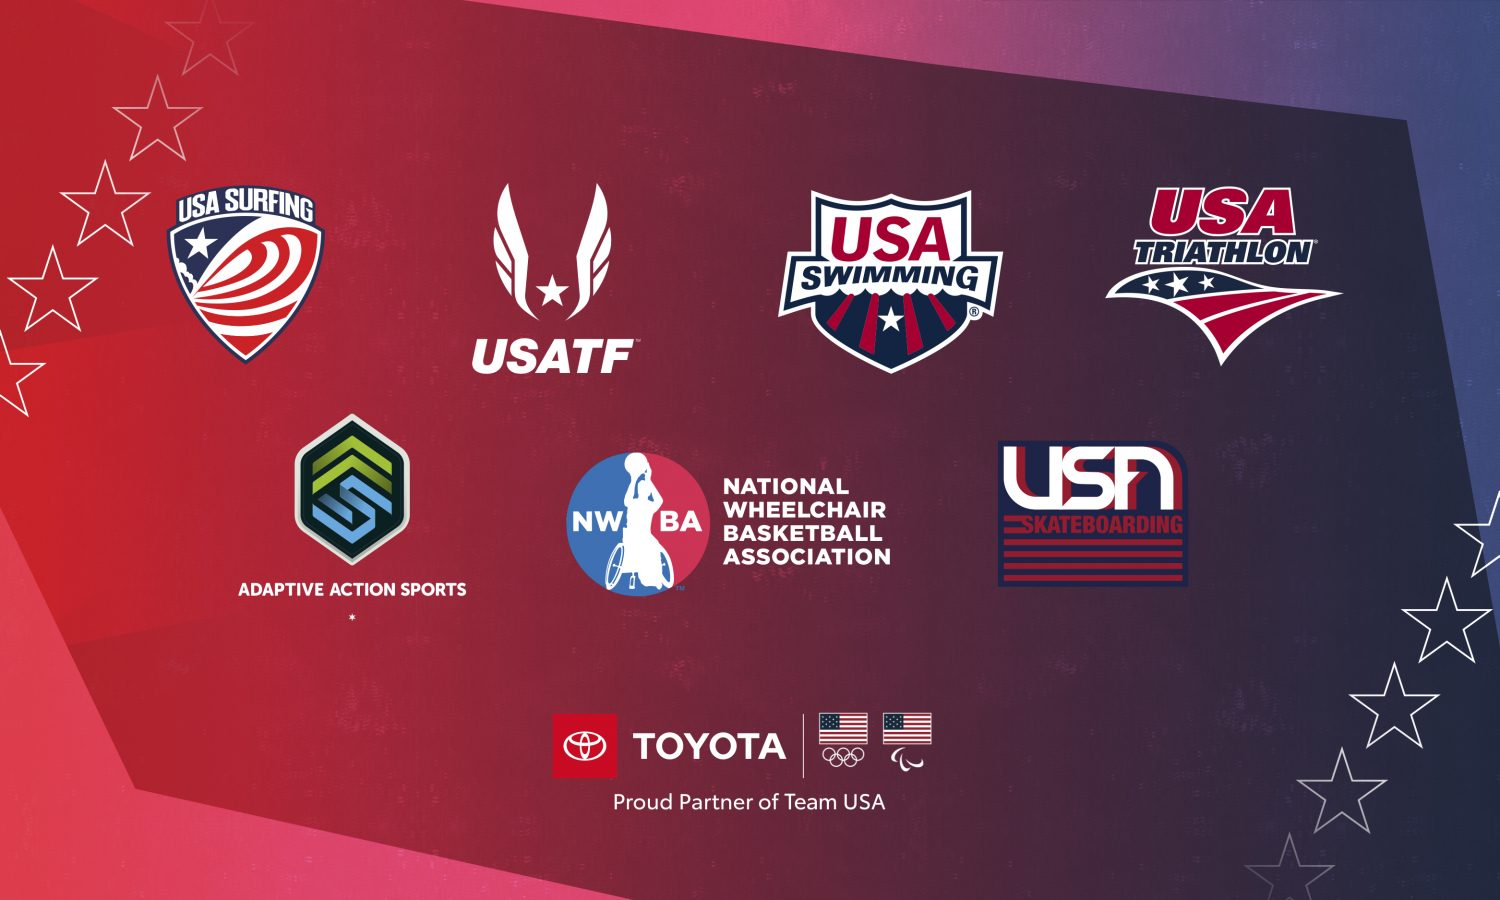 Toyota Reaffirms Commitment to U.S. Olympic and Paralympic Dreams